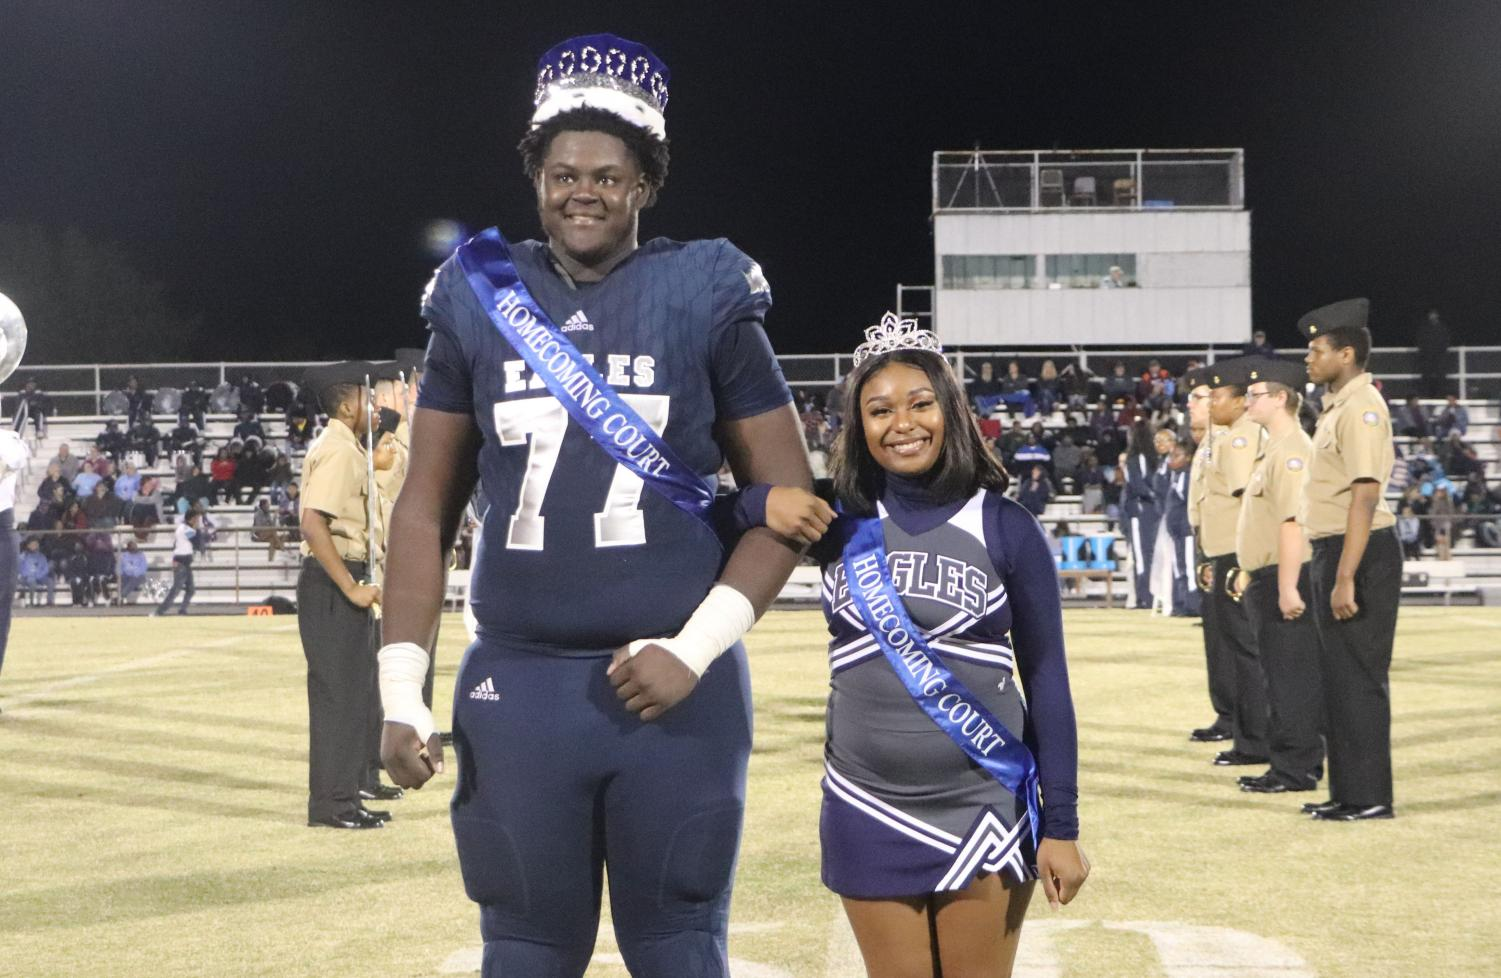 Seniors Tyler McDuffie and Brianna Simpson pose for a picture after being crowned king and queen of the 2019 Homecoming Court on Oct. 18. The halftime honor was McDuffie's first highlight of the night; his second was helping his varsity team mates beat the Comets 62-27.